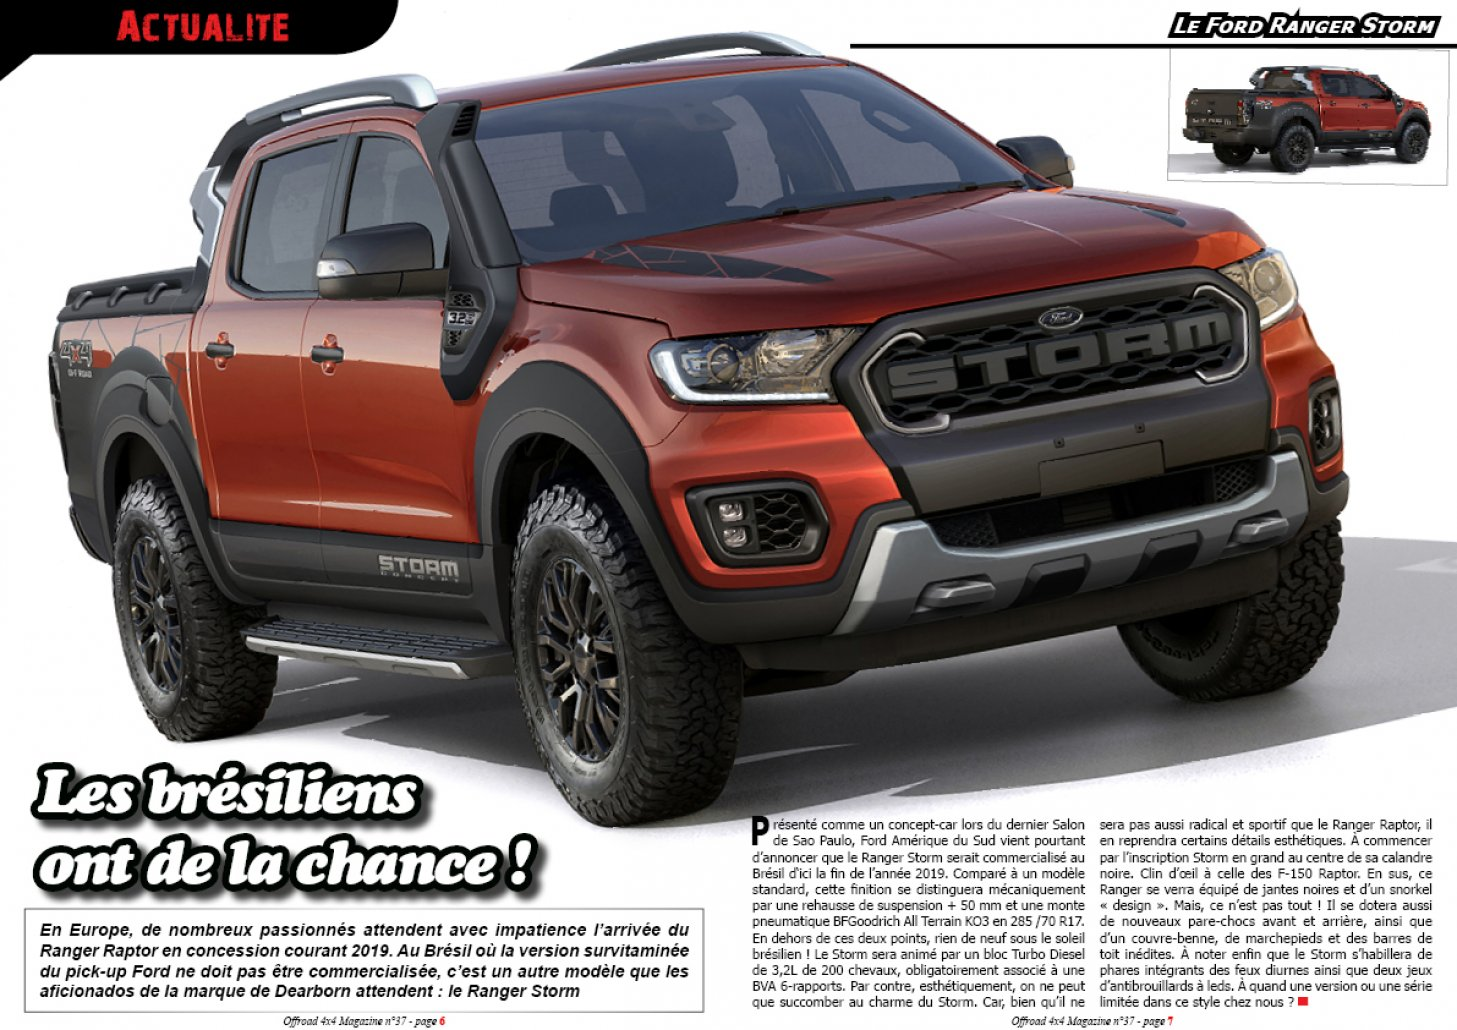 Le Ford Ranger Storm